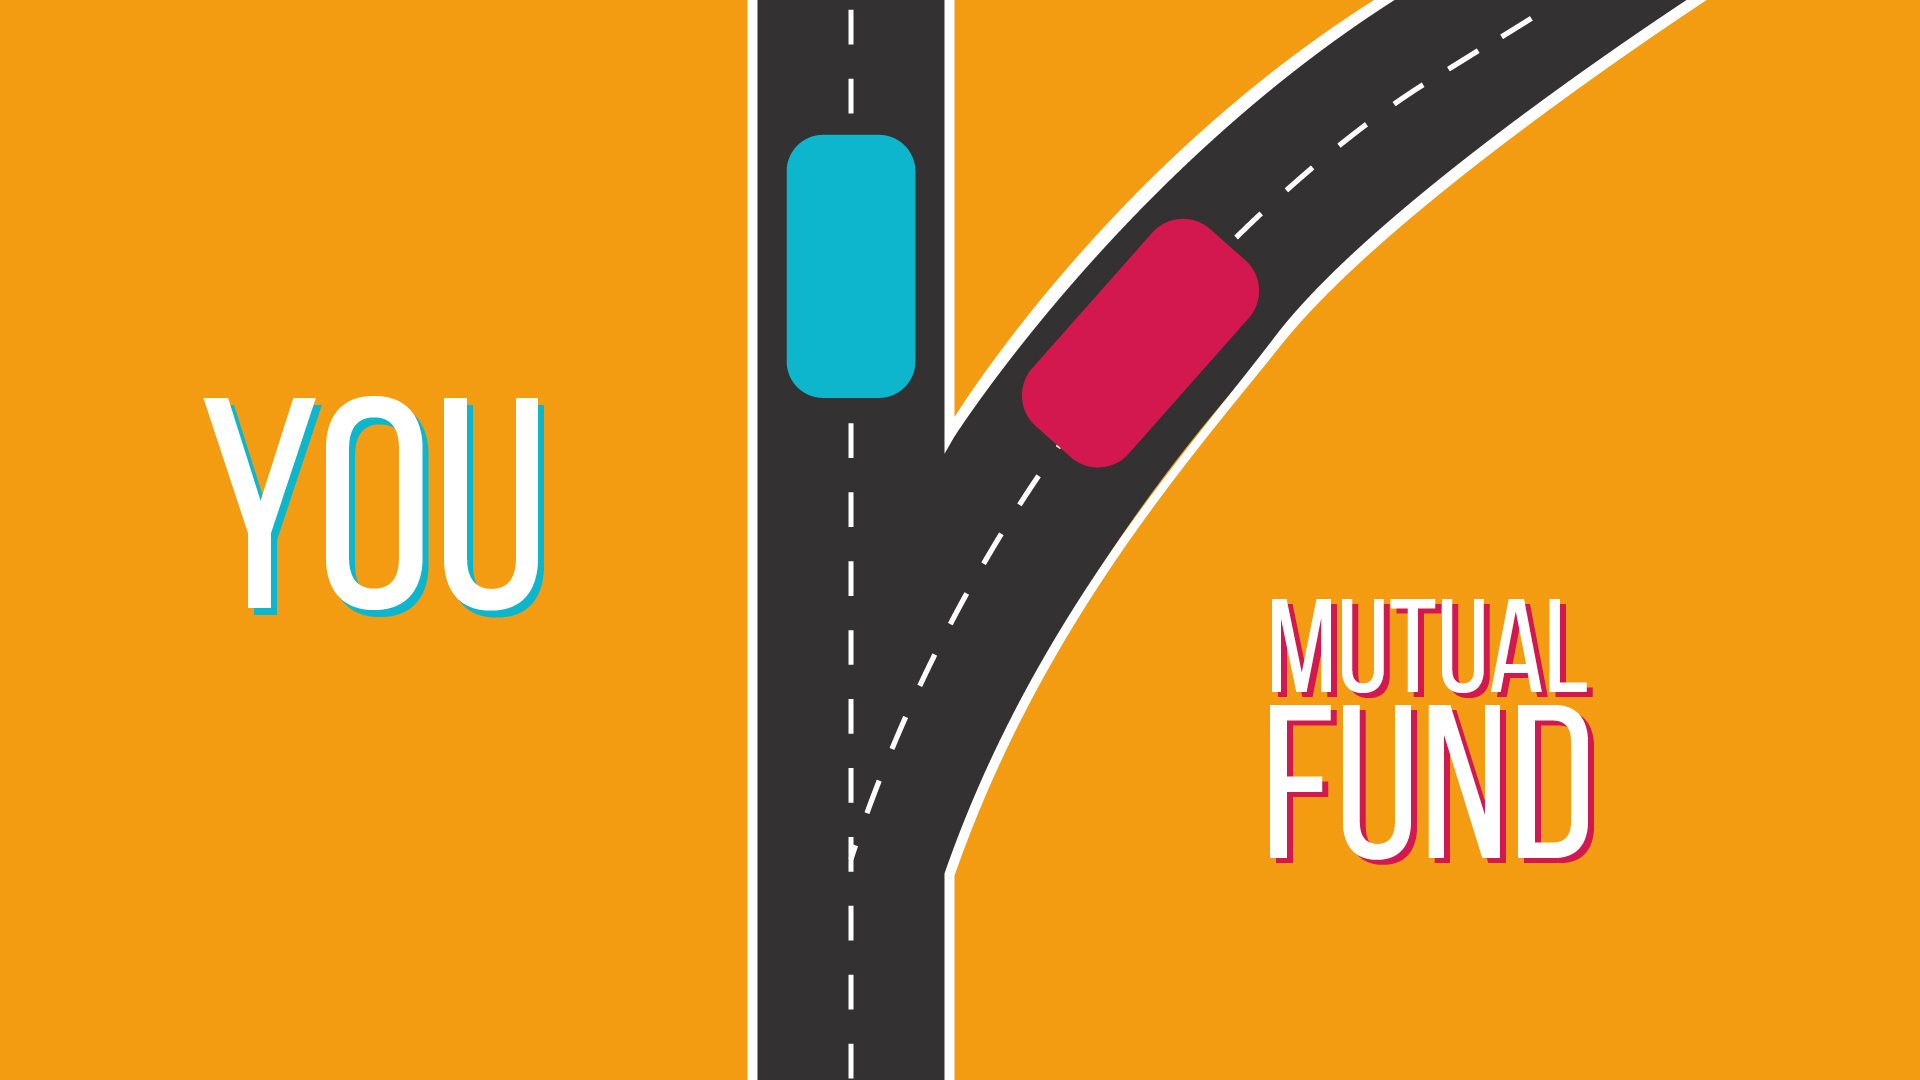 Should you have Index funds in your mutual fund portfolio?